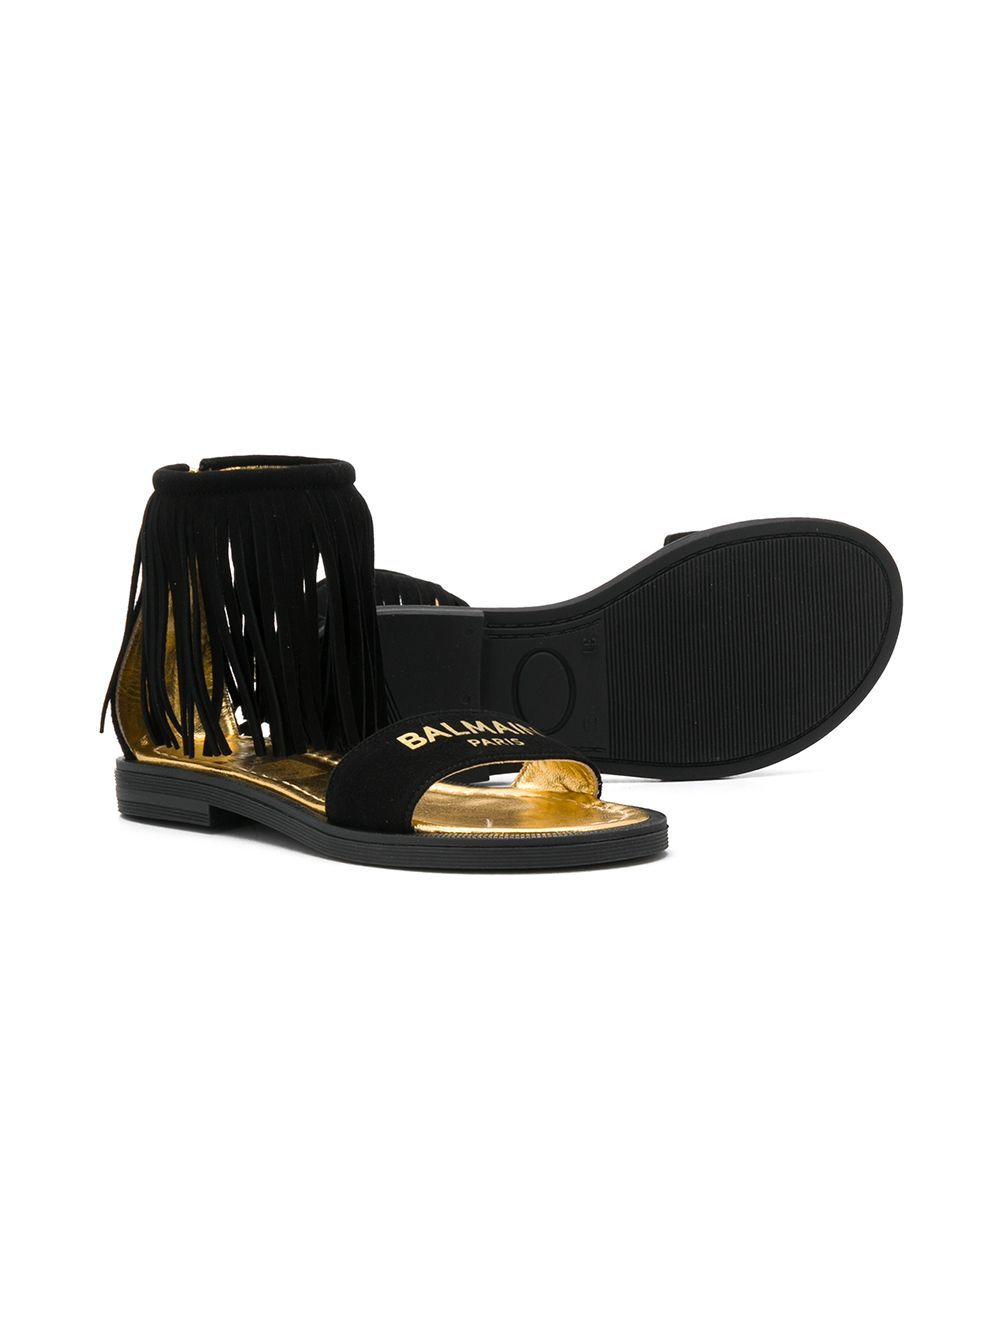 BALMAIN KIDS open toe fringed logo sandals black - Maison De Fashion